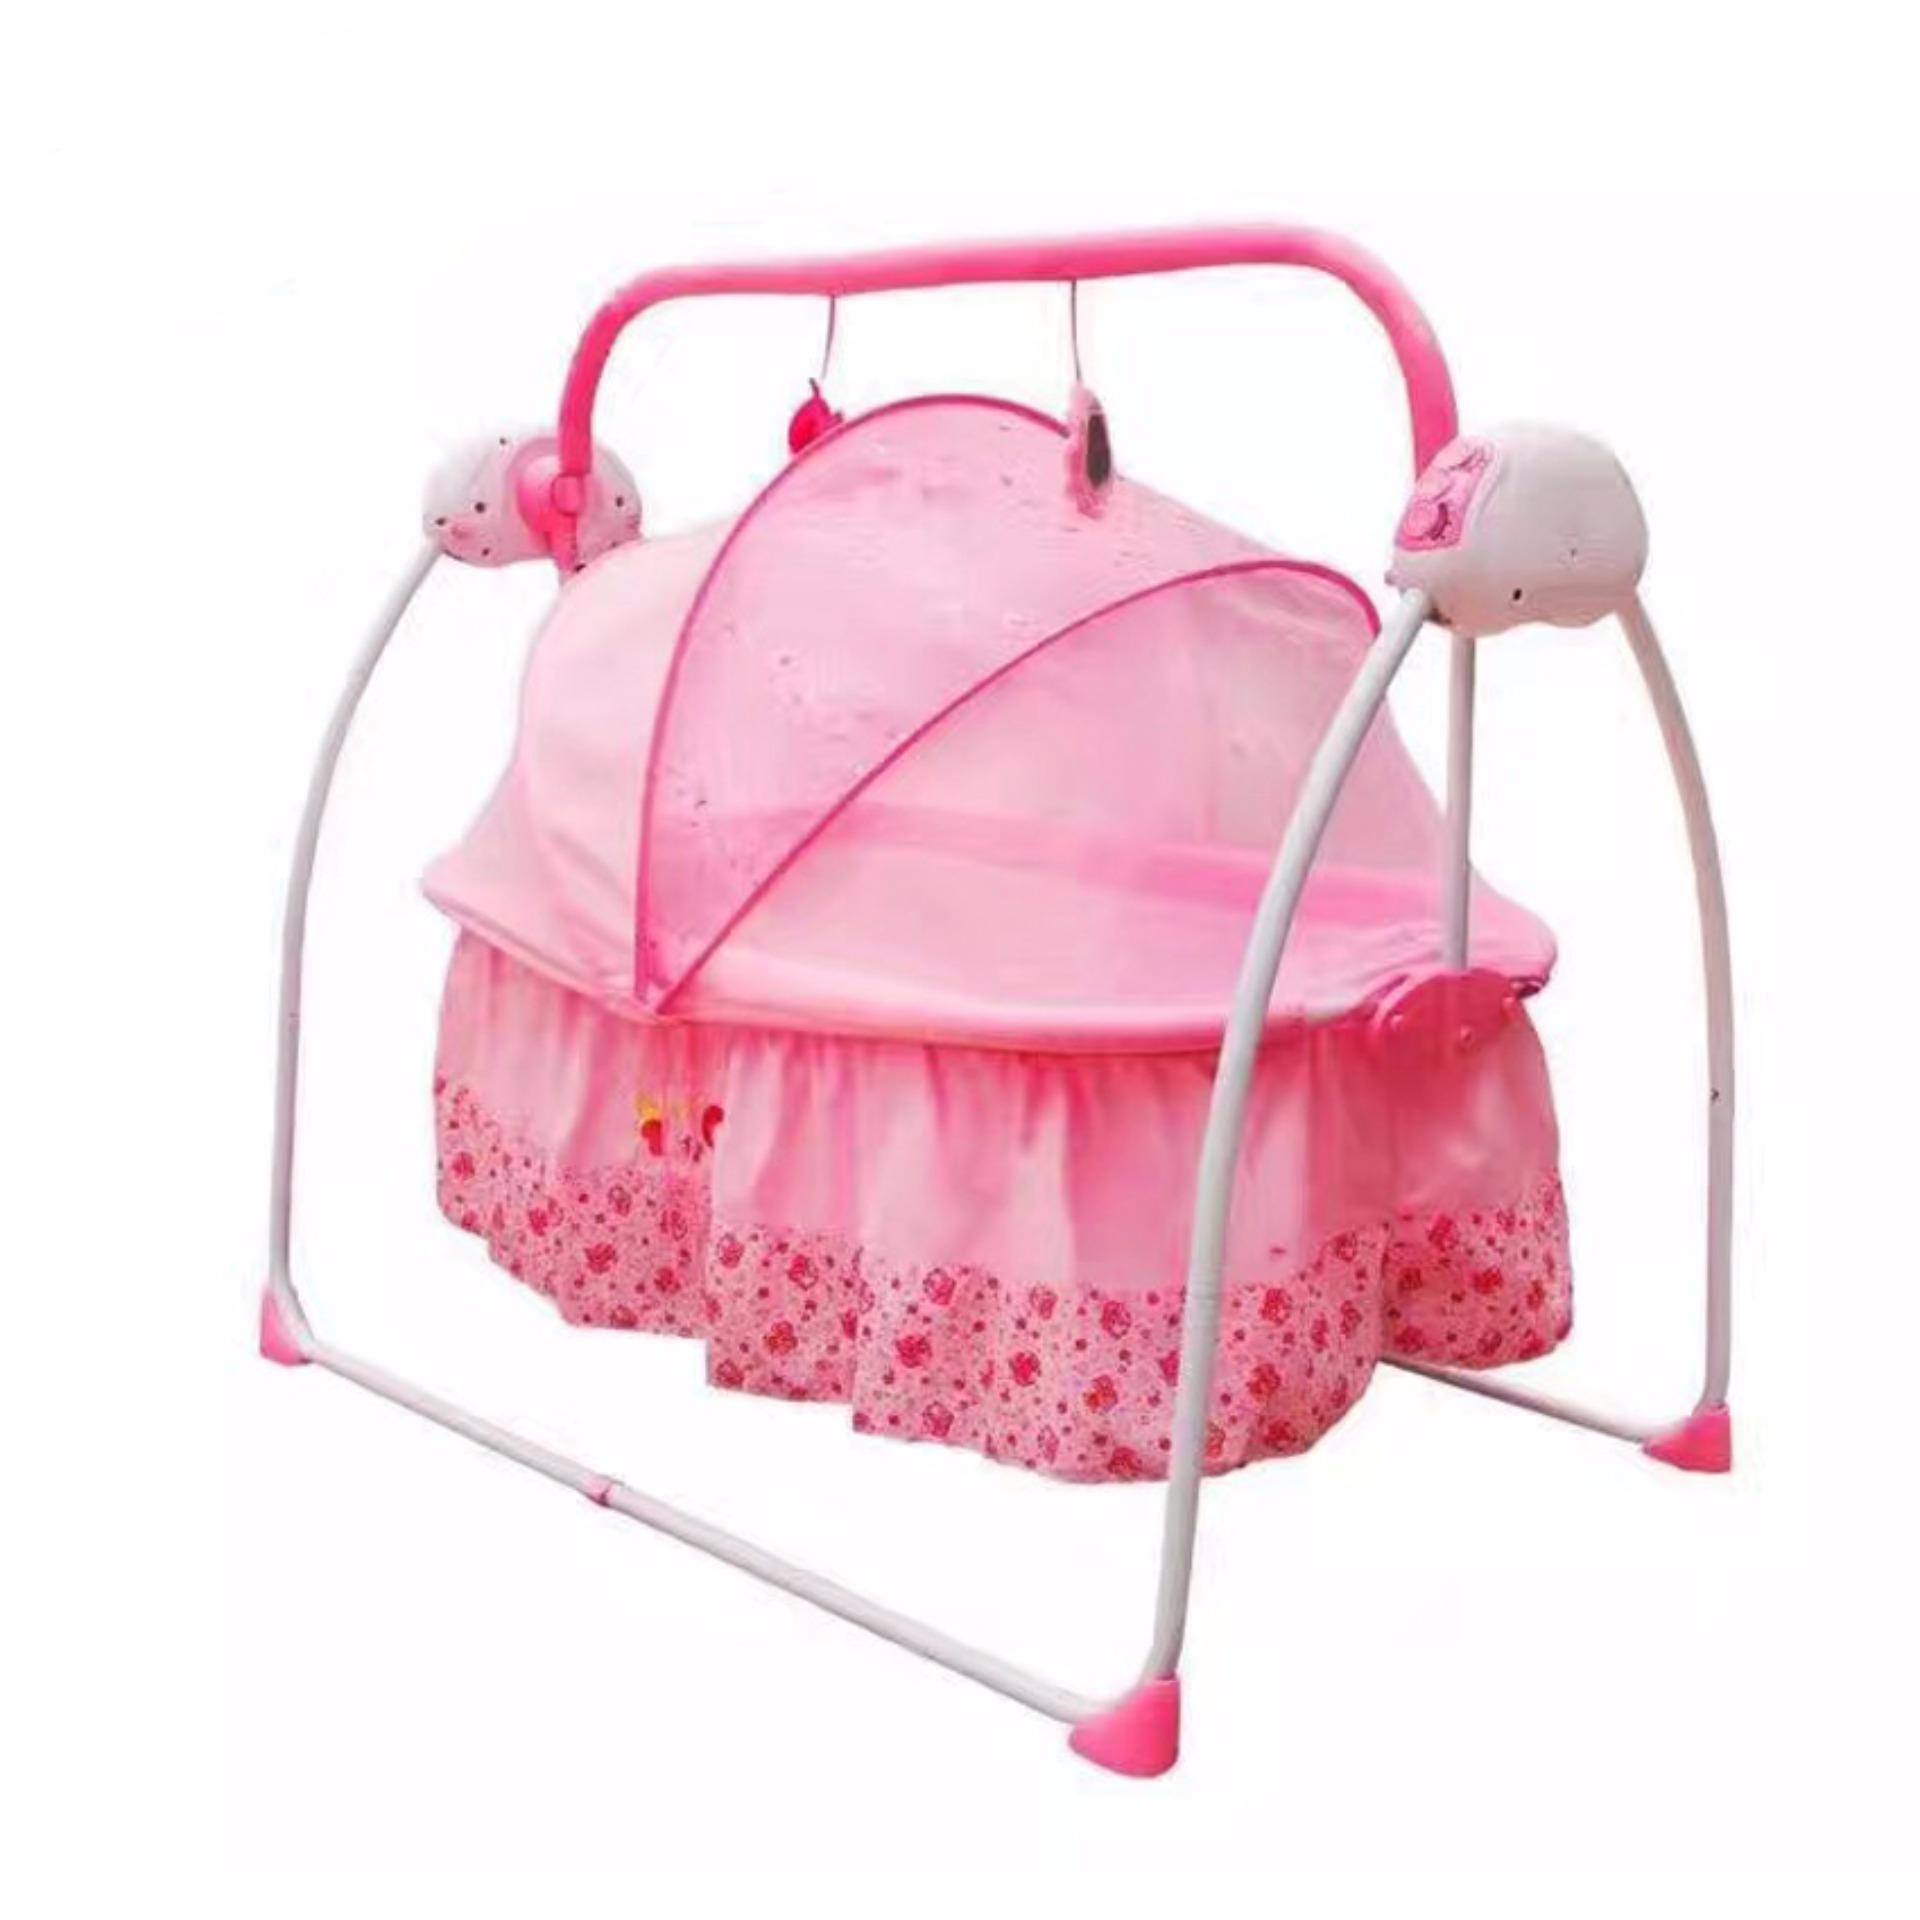 Rocking crib for sale philippines - Pretty In Pink Soothing Motions Baby Cradle Swing Pink